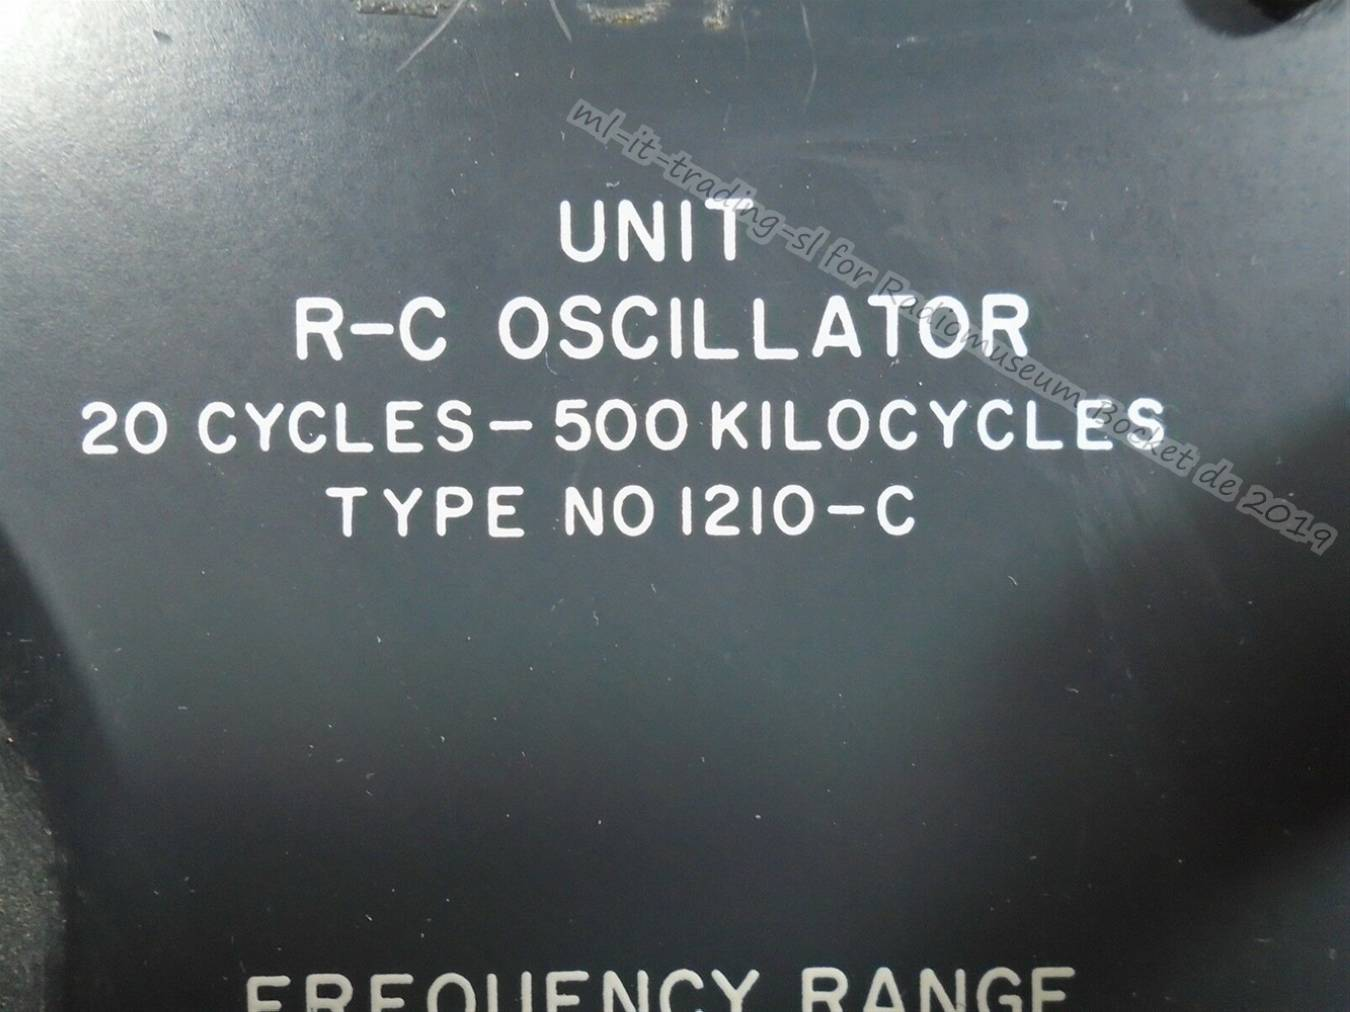 General Radio Unit R-C Oscillator Type NO 1210-C ml-it-trading-sl 2019 2.jpg